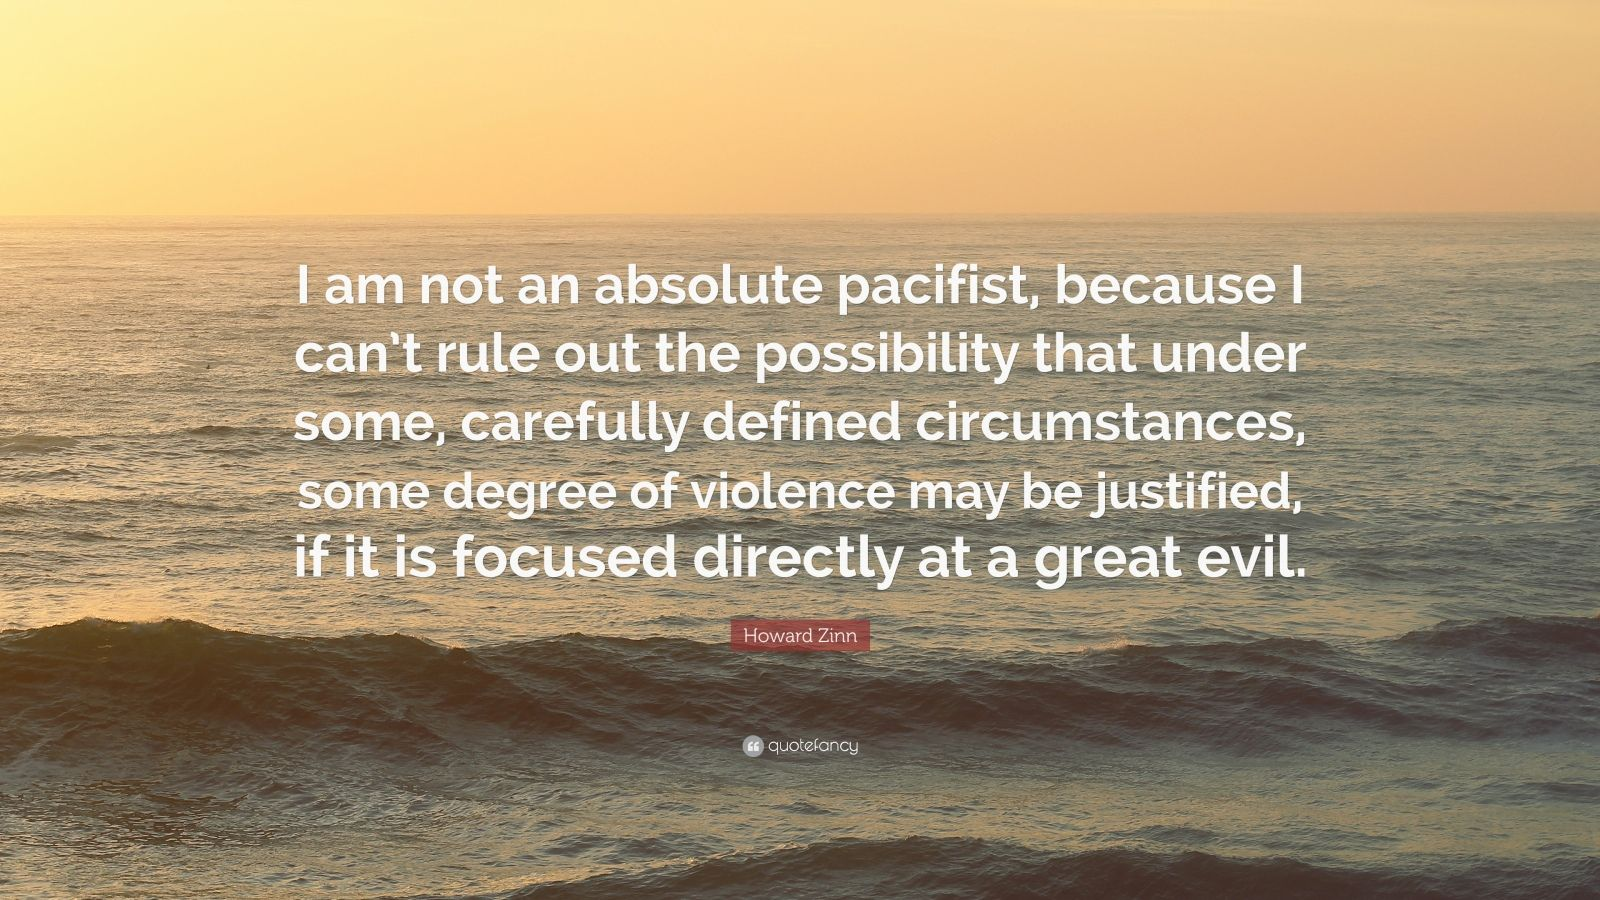 "Howard Zinn Quote: ""I am not an absolute pacifist, because I can't rule out the possibility that under some, carefully defined circumstances, some degree of violence may be justified, if it is focused directly at a great evil."""